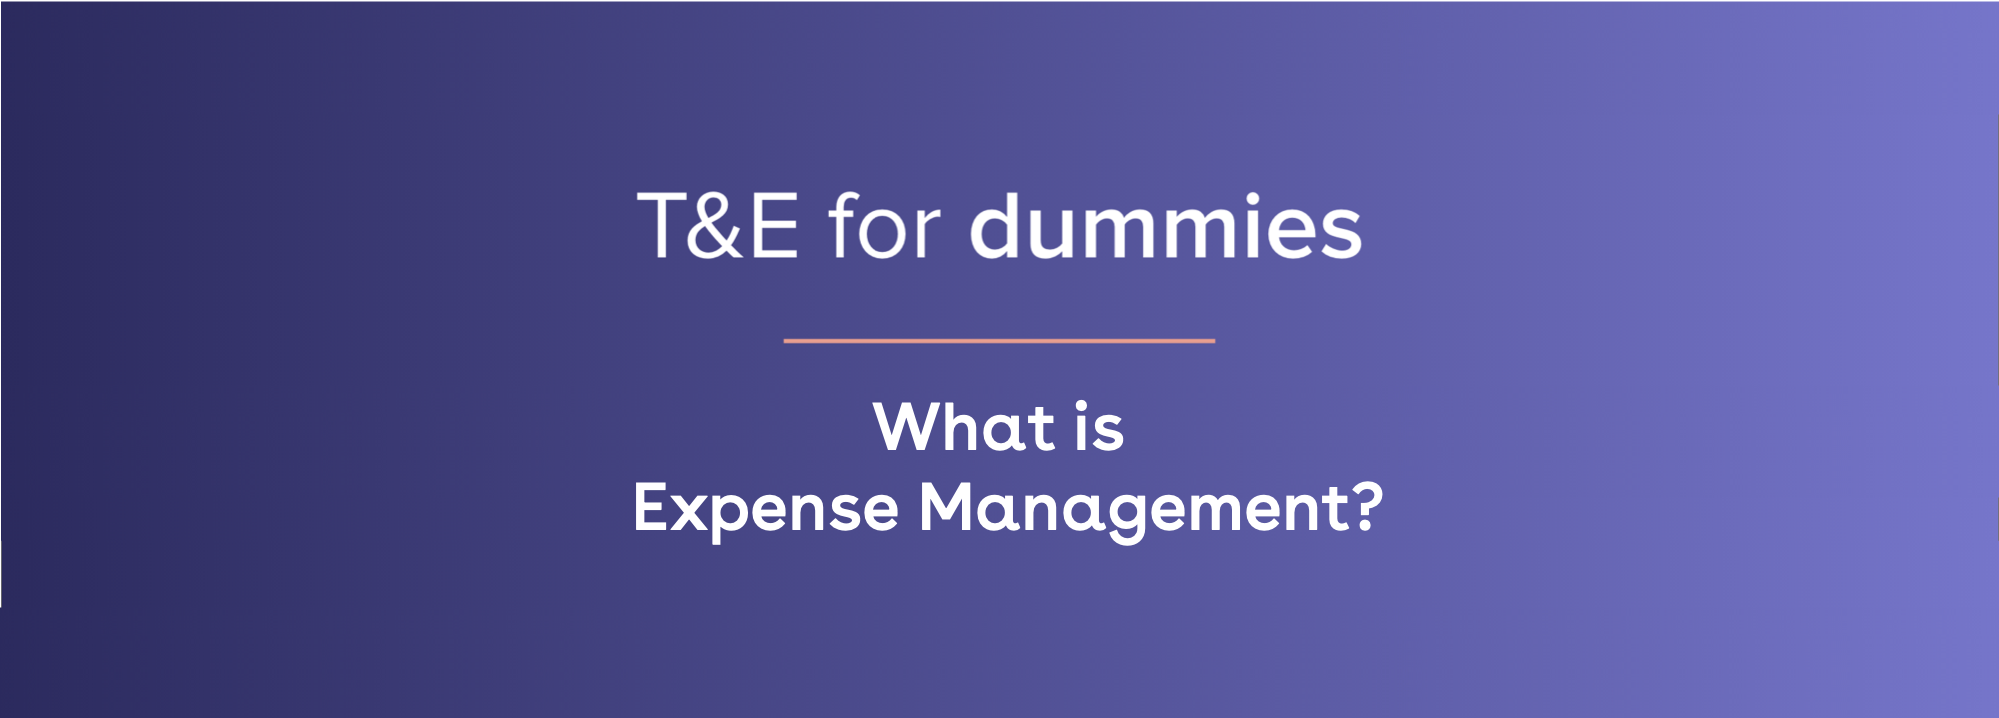 what is expense management